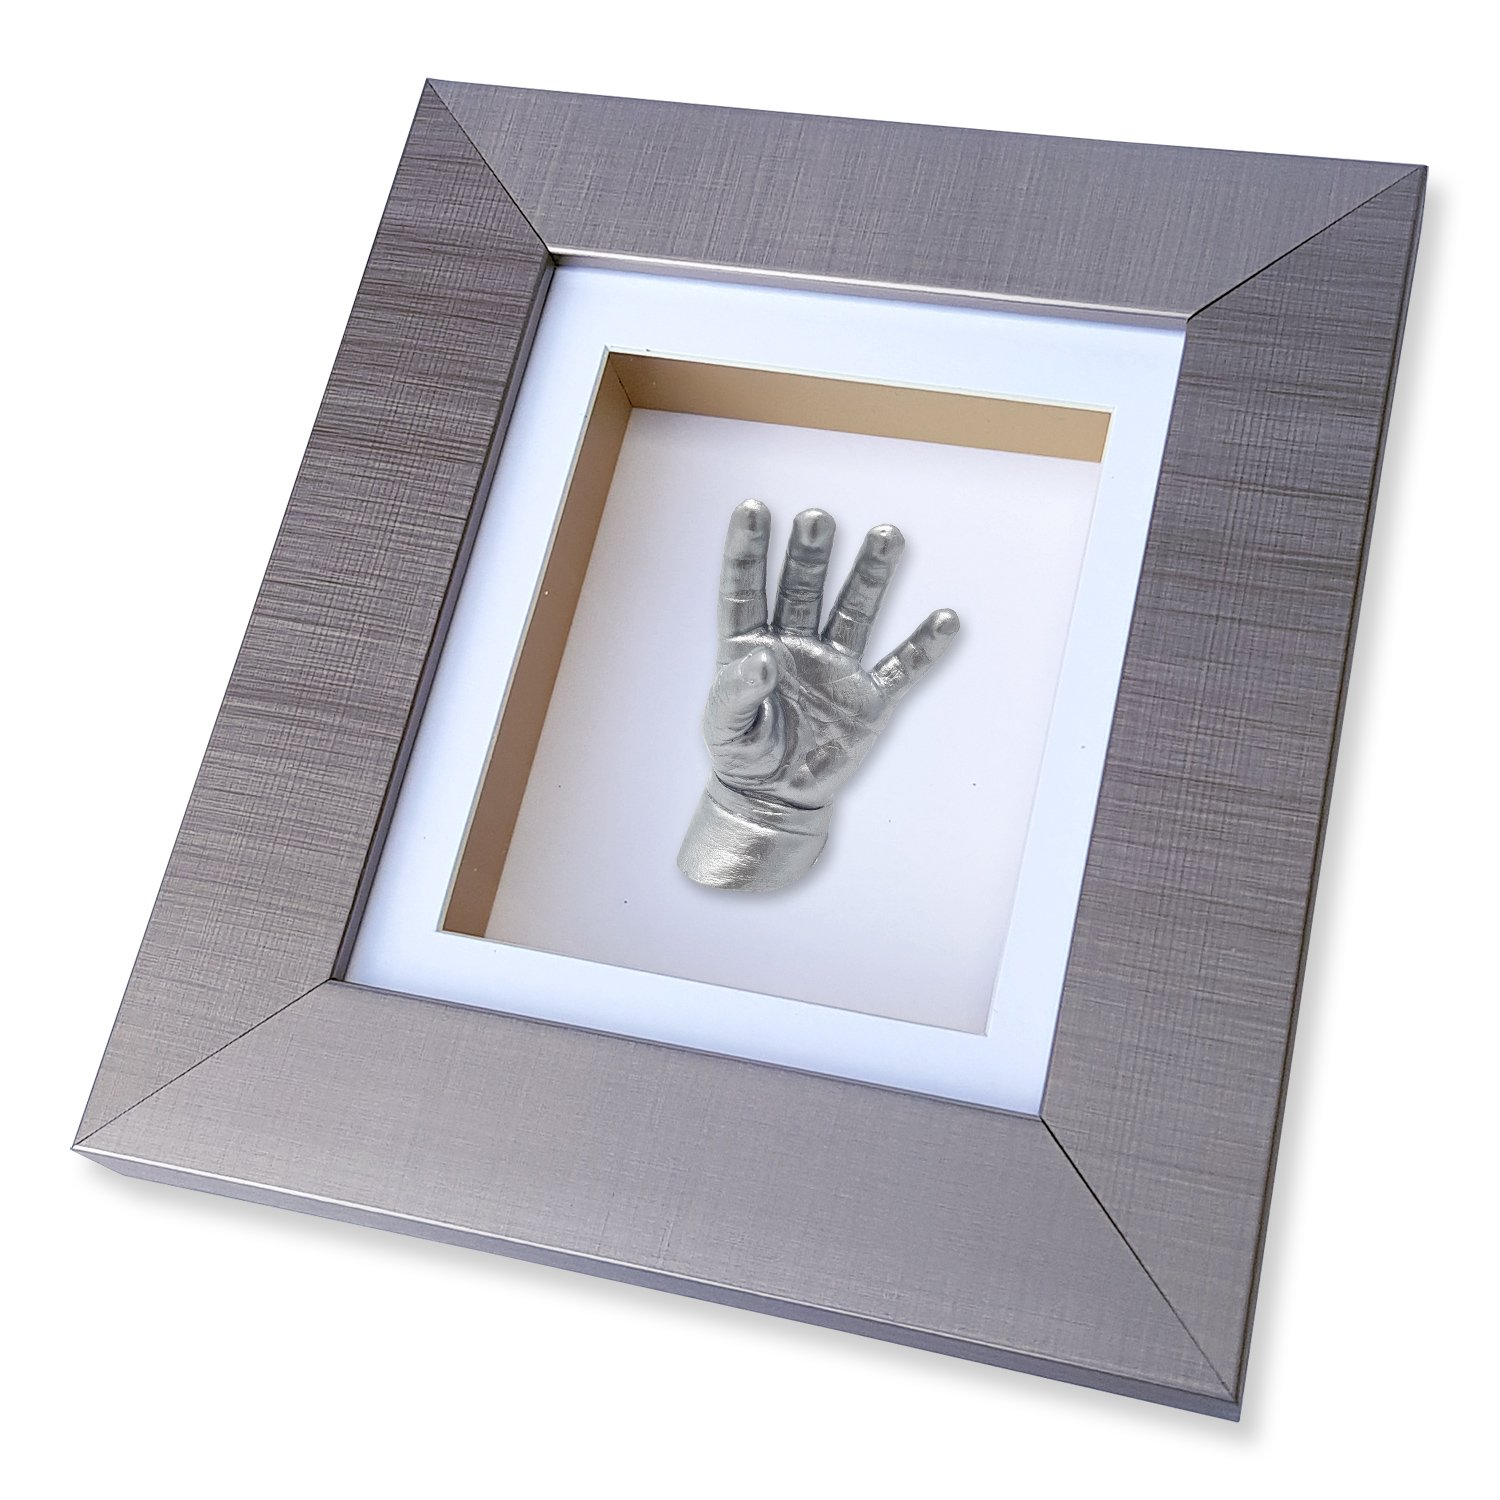 Baby & Toddler 3D Hand & Foot Casting Kit with Frame - 23.5cm x 21cm (Oak) Baby Casts & Prints